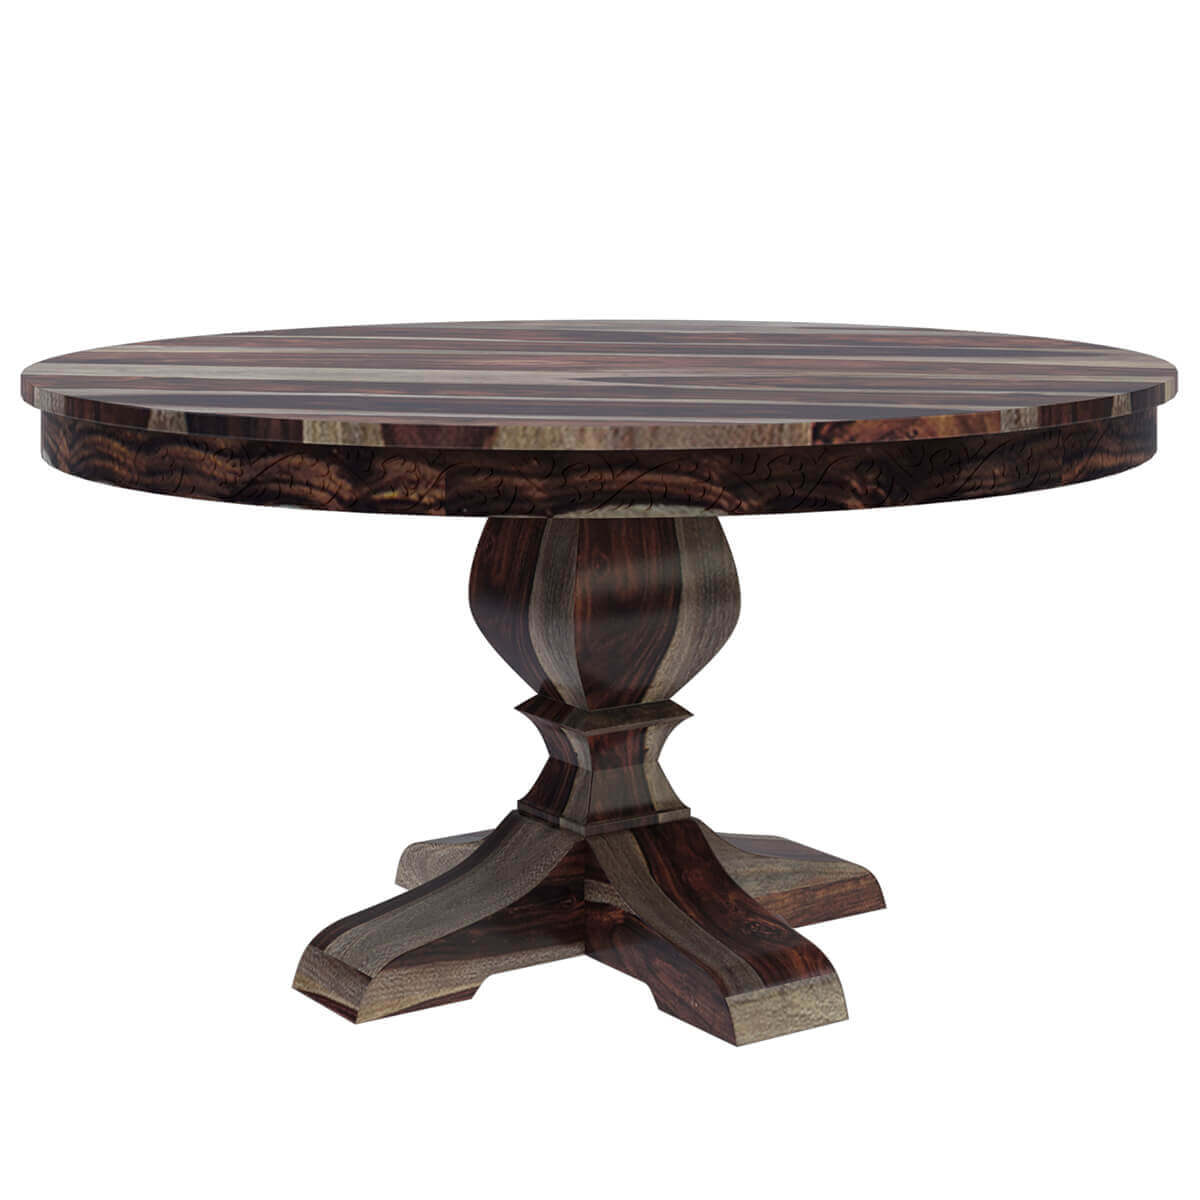 Hosford handcrafted solid wood 60quot round pedestal dining table for Pedestal dining table